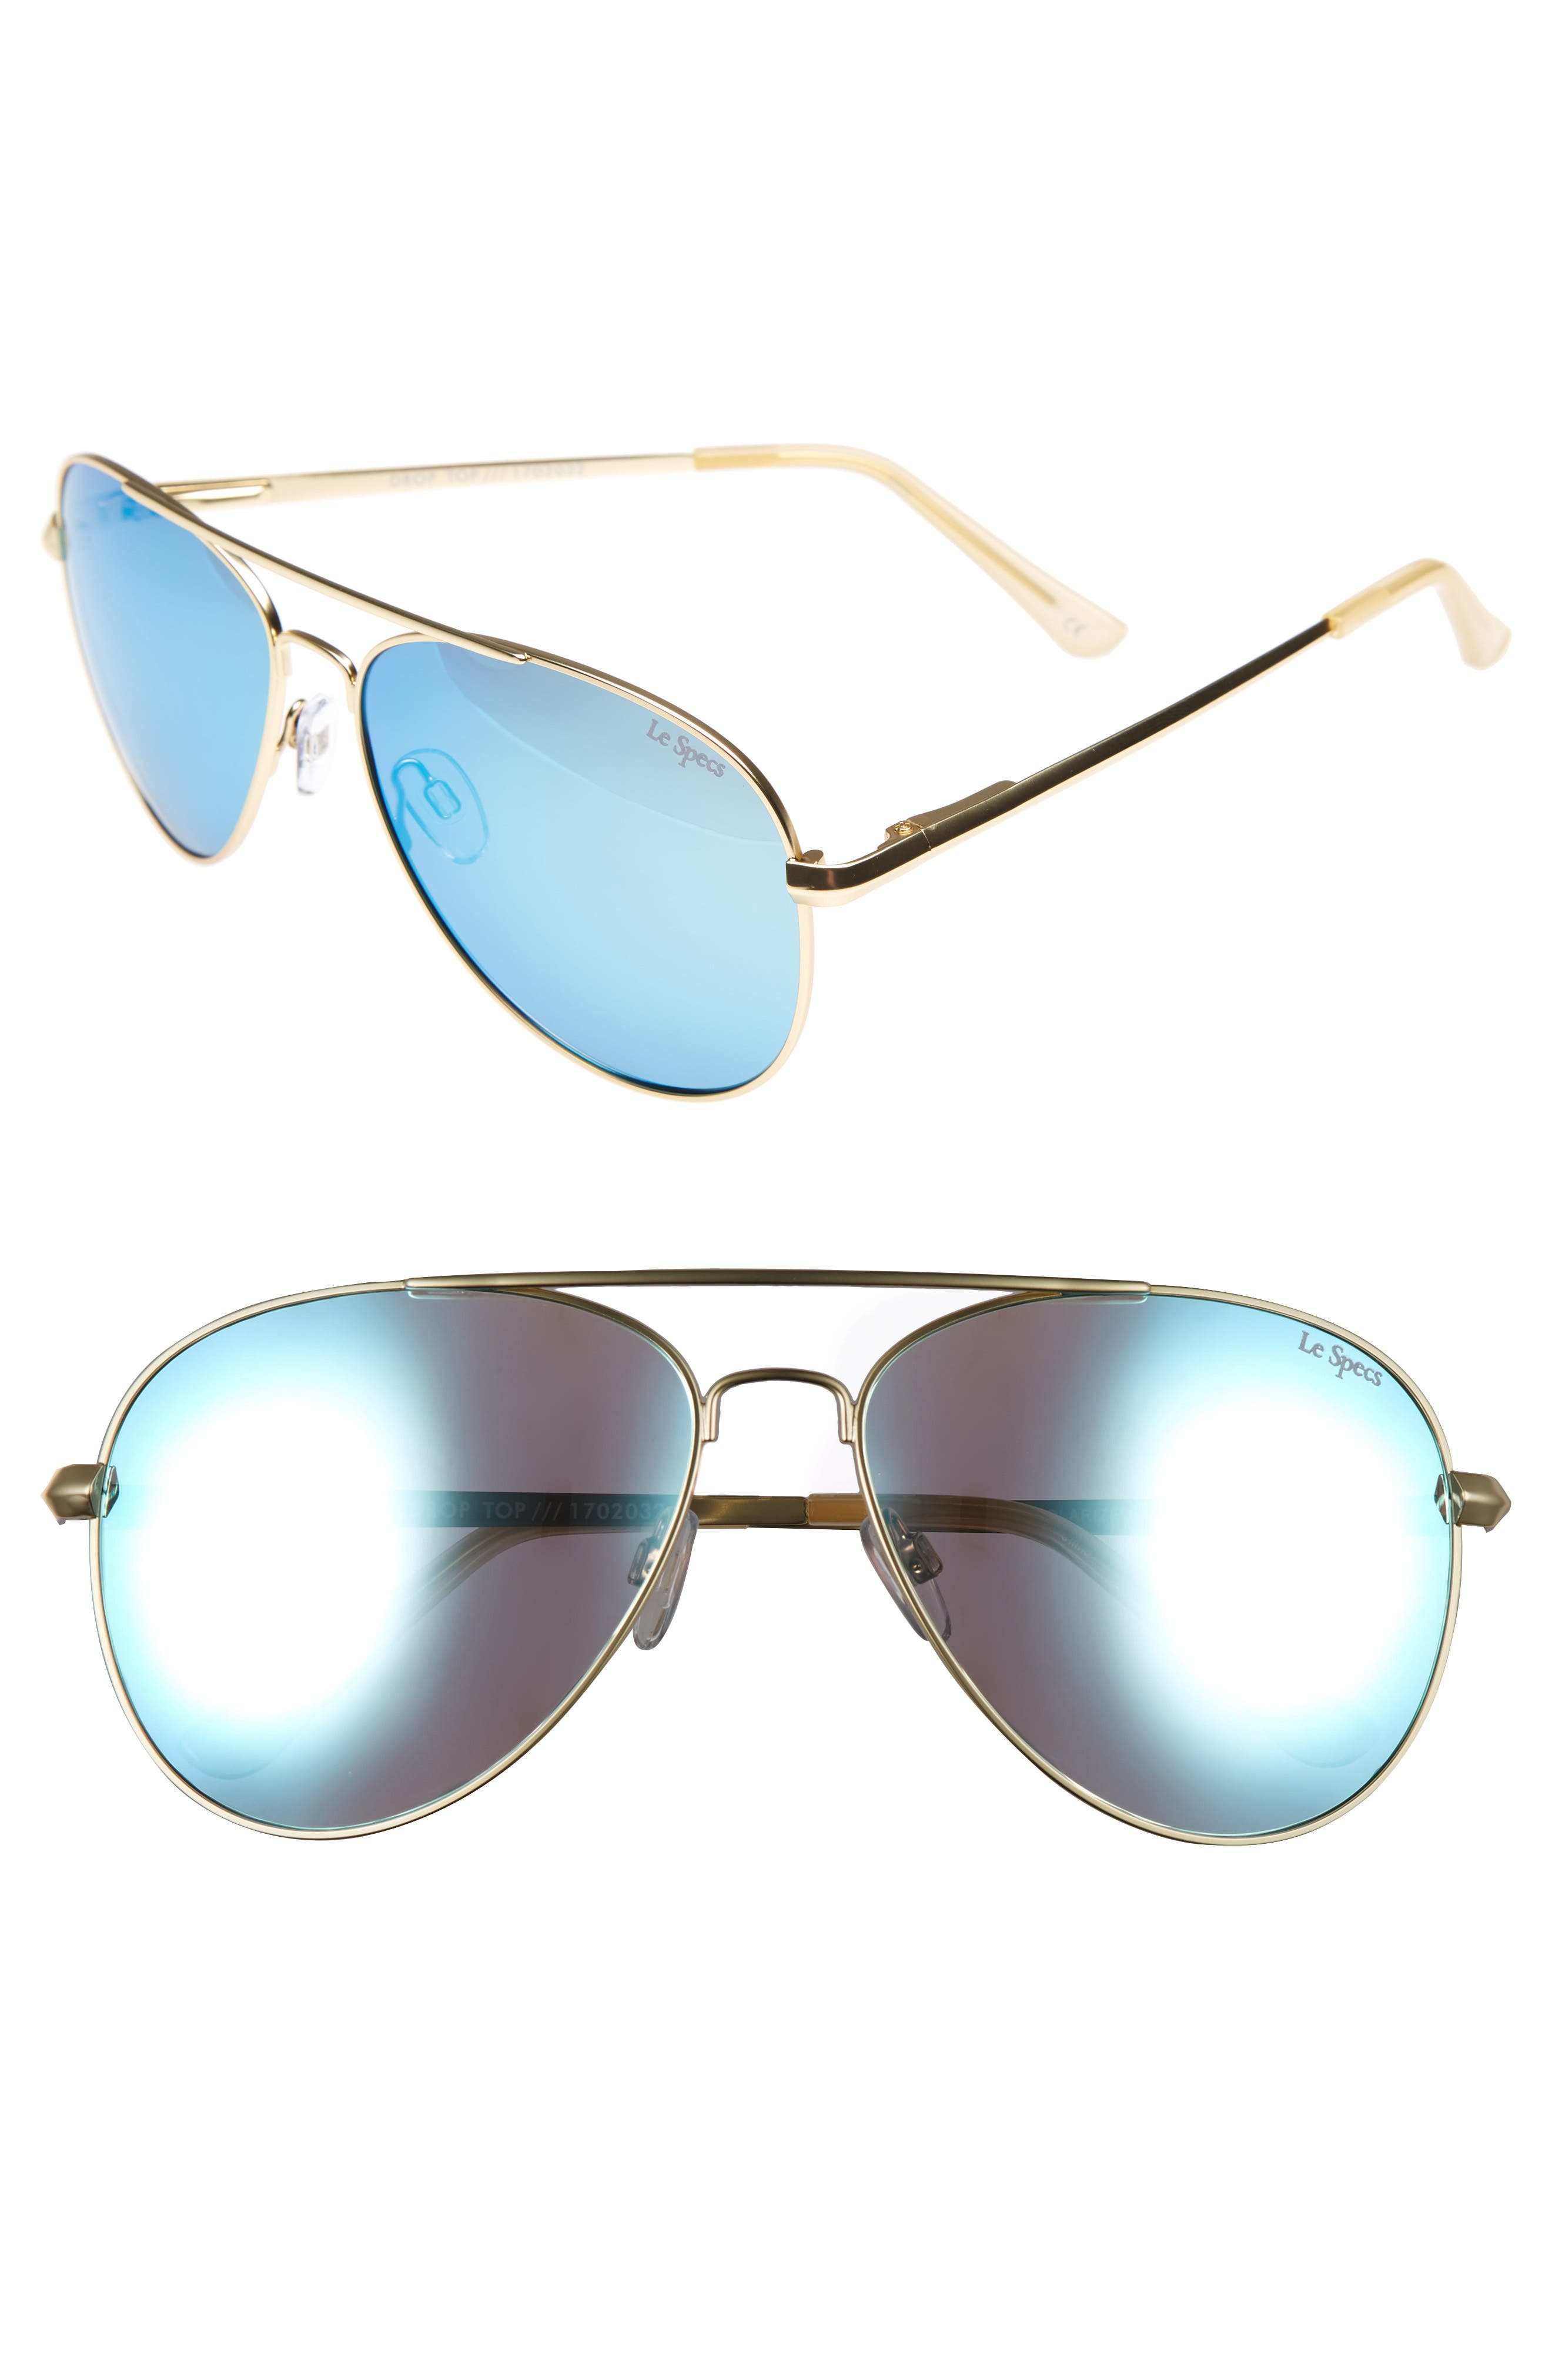 Drop Top 60mm Polarized Aviator Sunglasses,                         Main,                         color, Brushed Gold